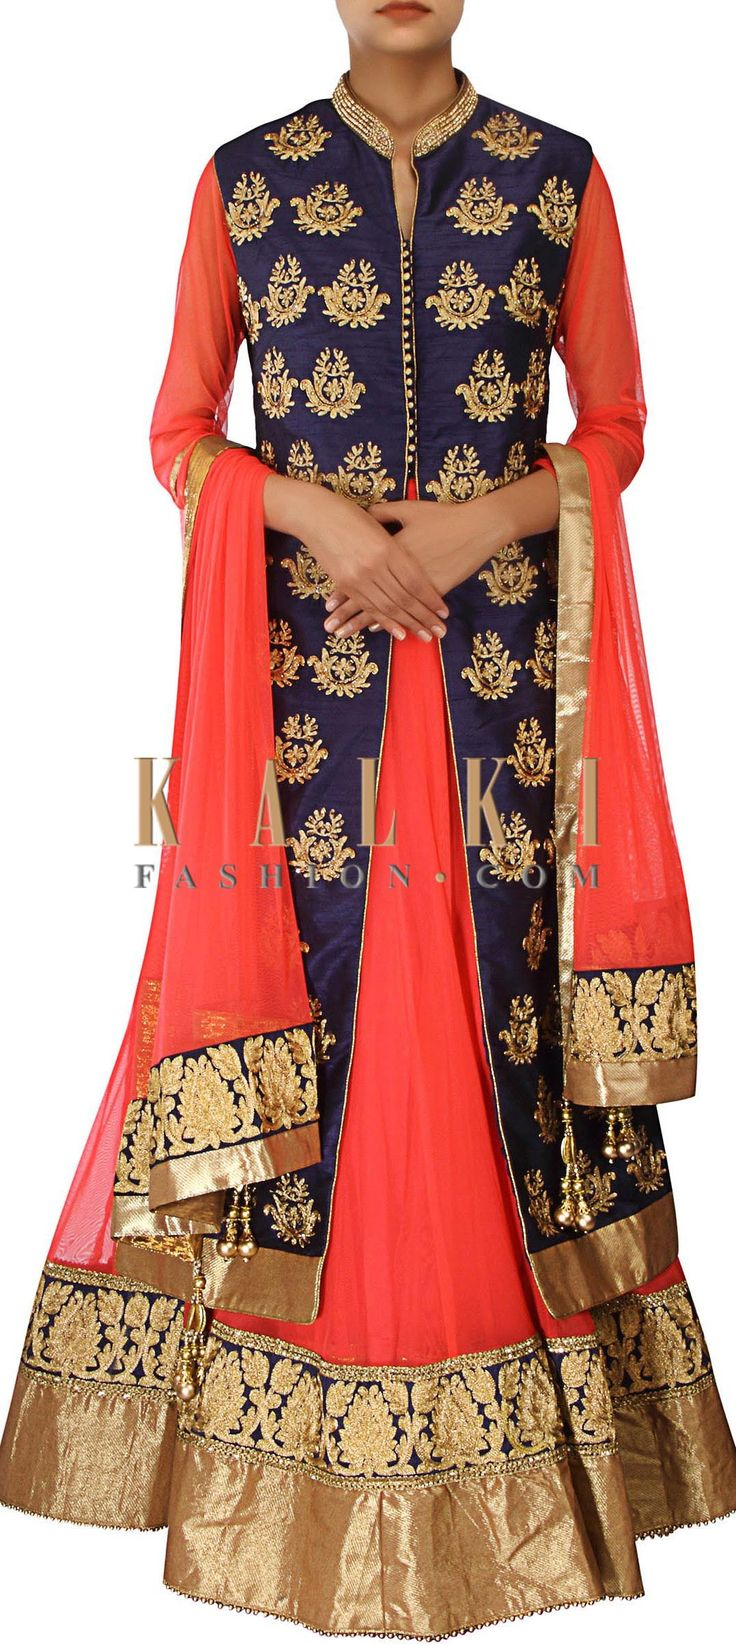 Buy Online from the link below. We ship worldwide (Free Shipping over US$100) http://www.kalkifashion.com/orange-and-navy-blue-anarkali-suit-adorn-in-aari-embroidery-only-on-kalki.html